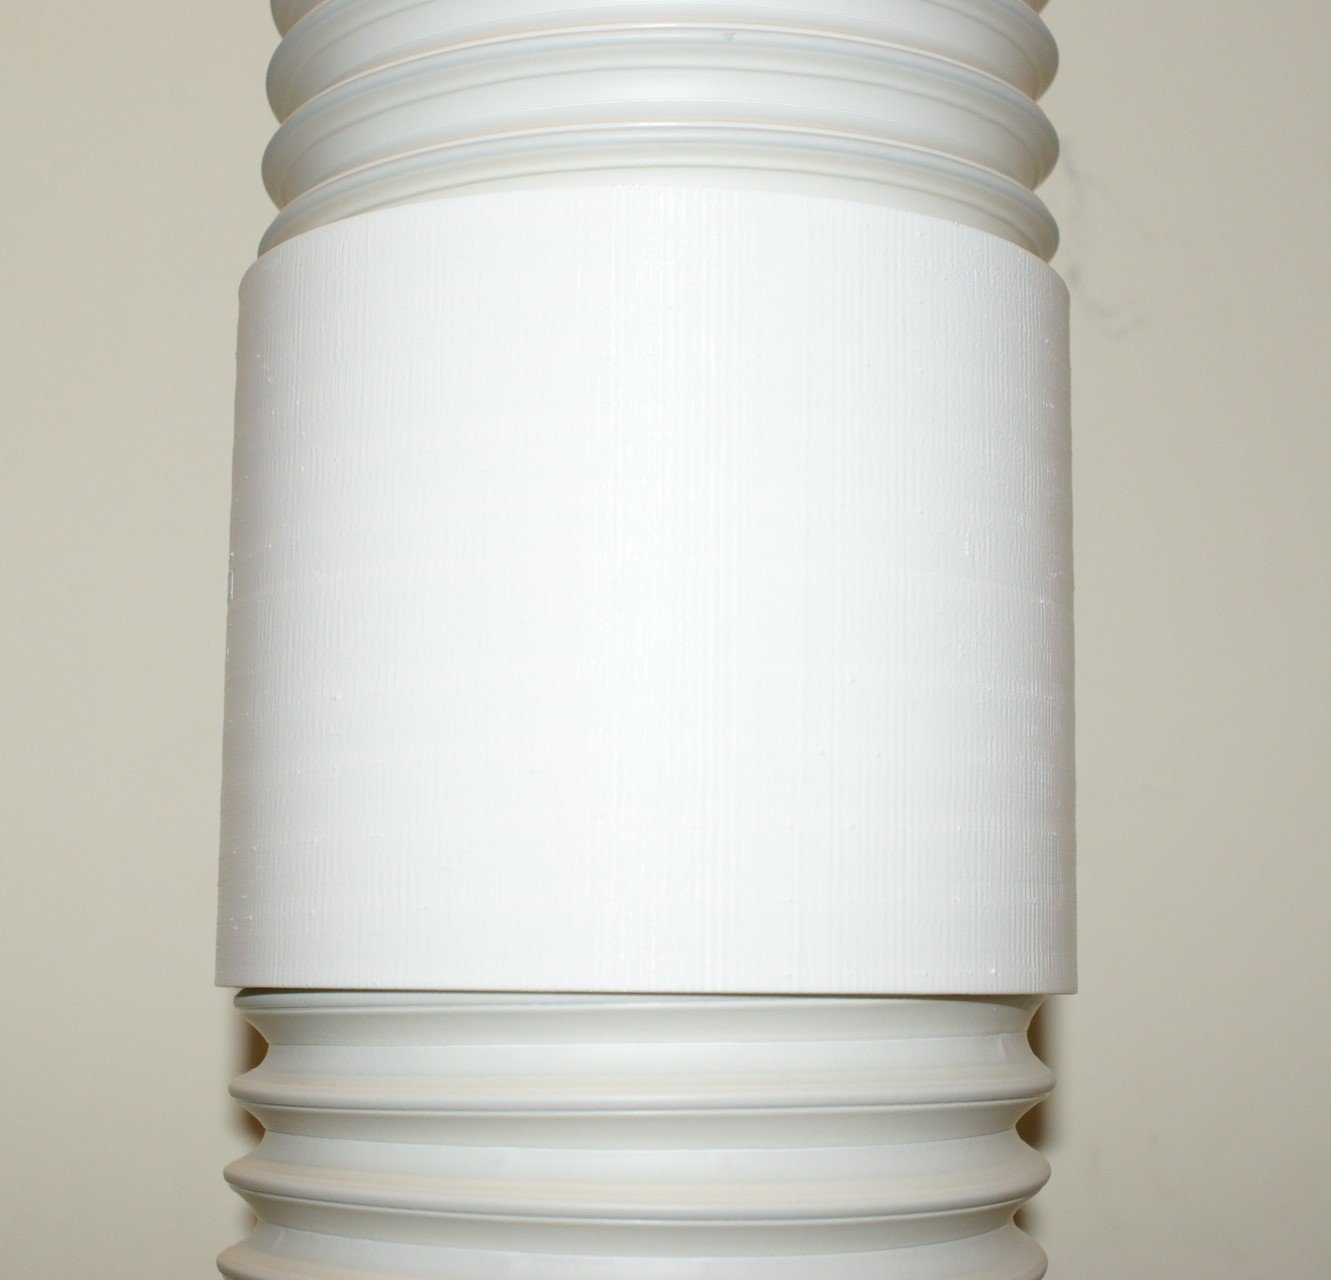 5'' Portable Air Conditioner (A/C) hose Coupling/Coupler/Connector(3D printed in USA)